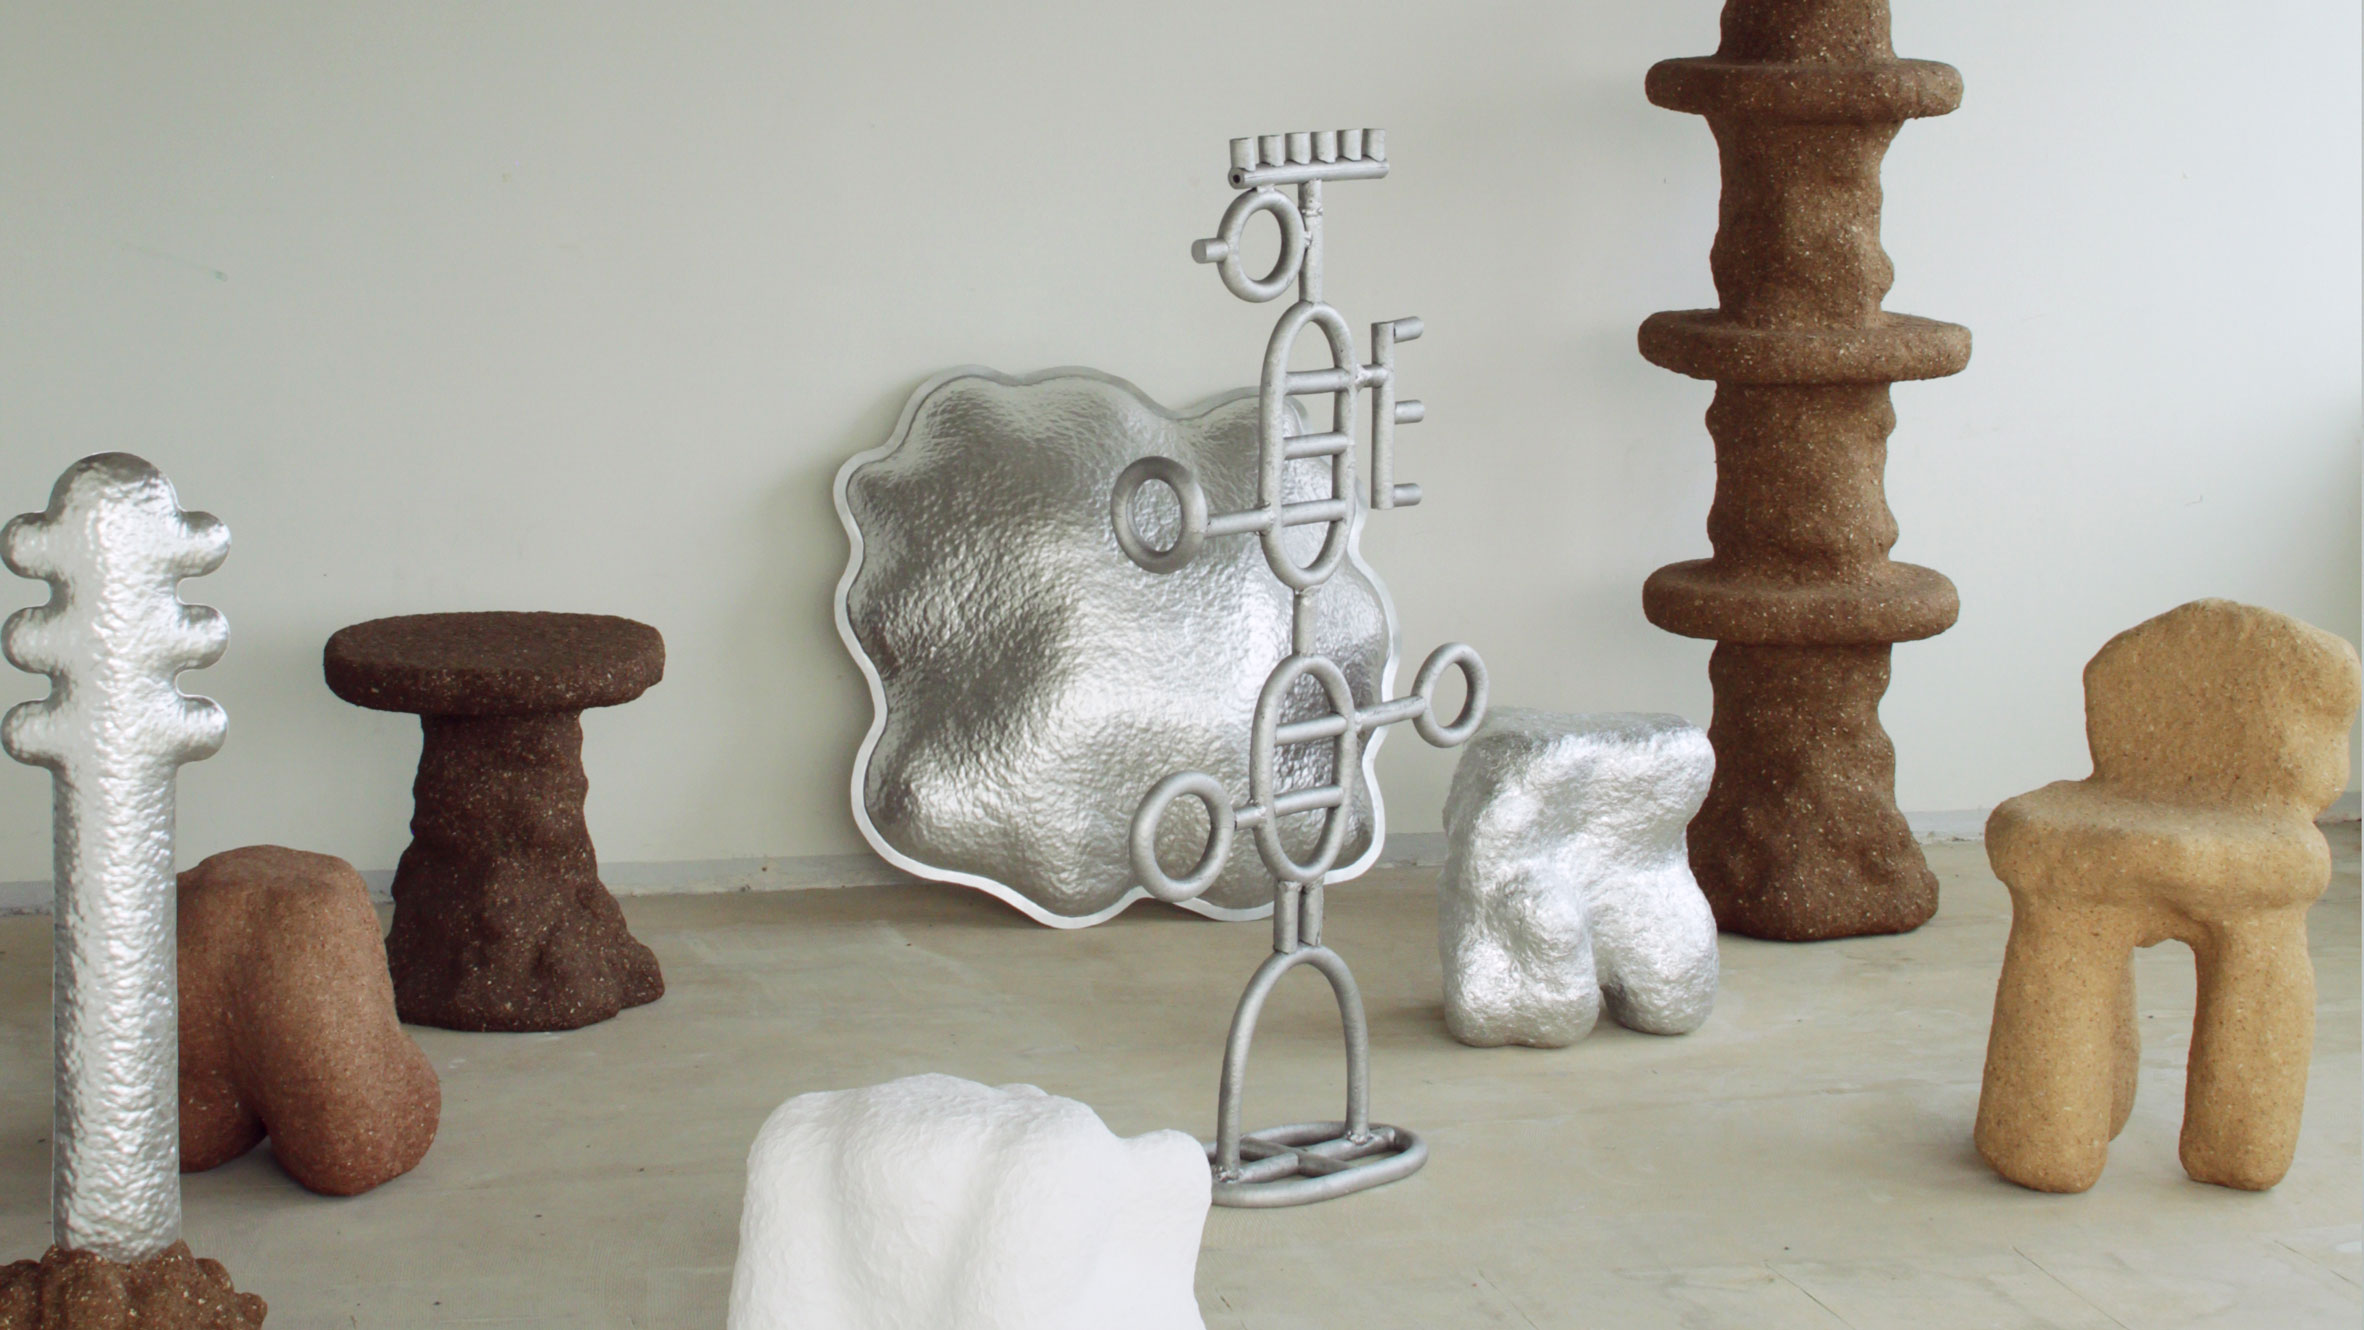 The Drawing Objects by Sigve Knutson